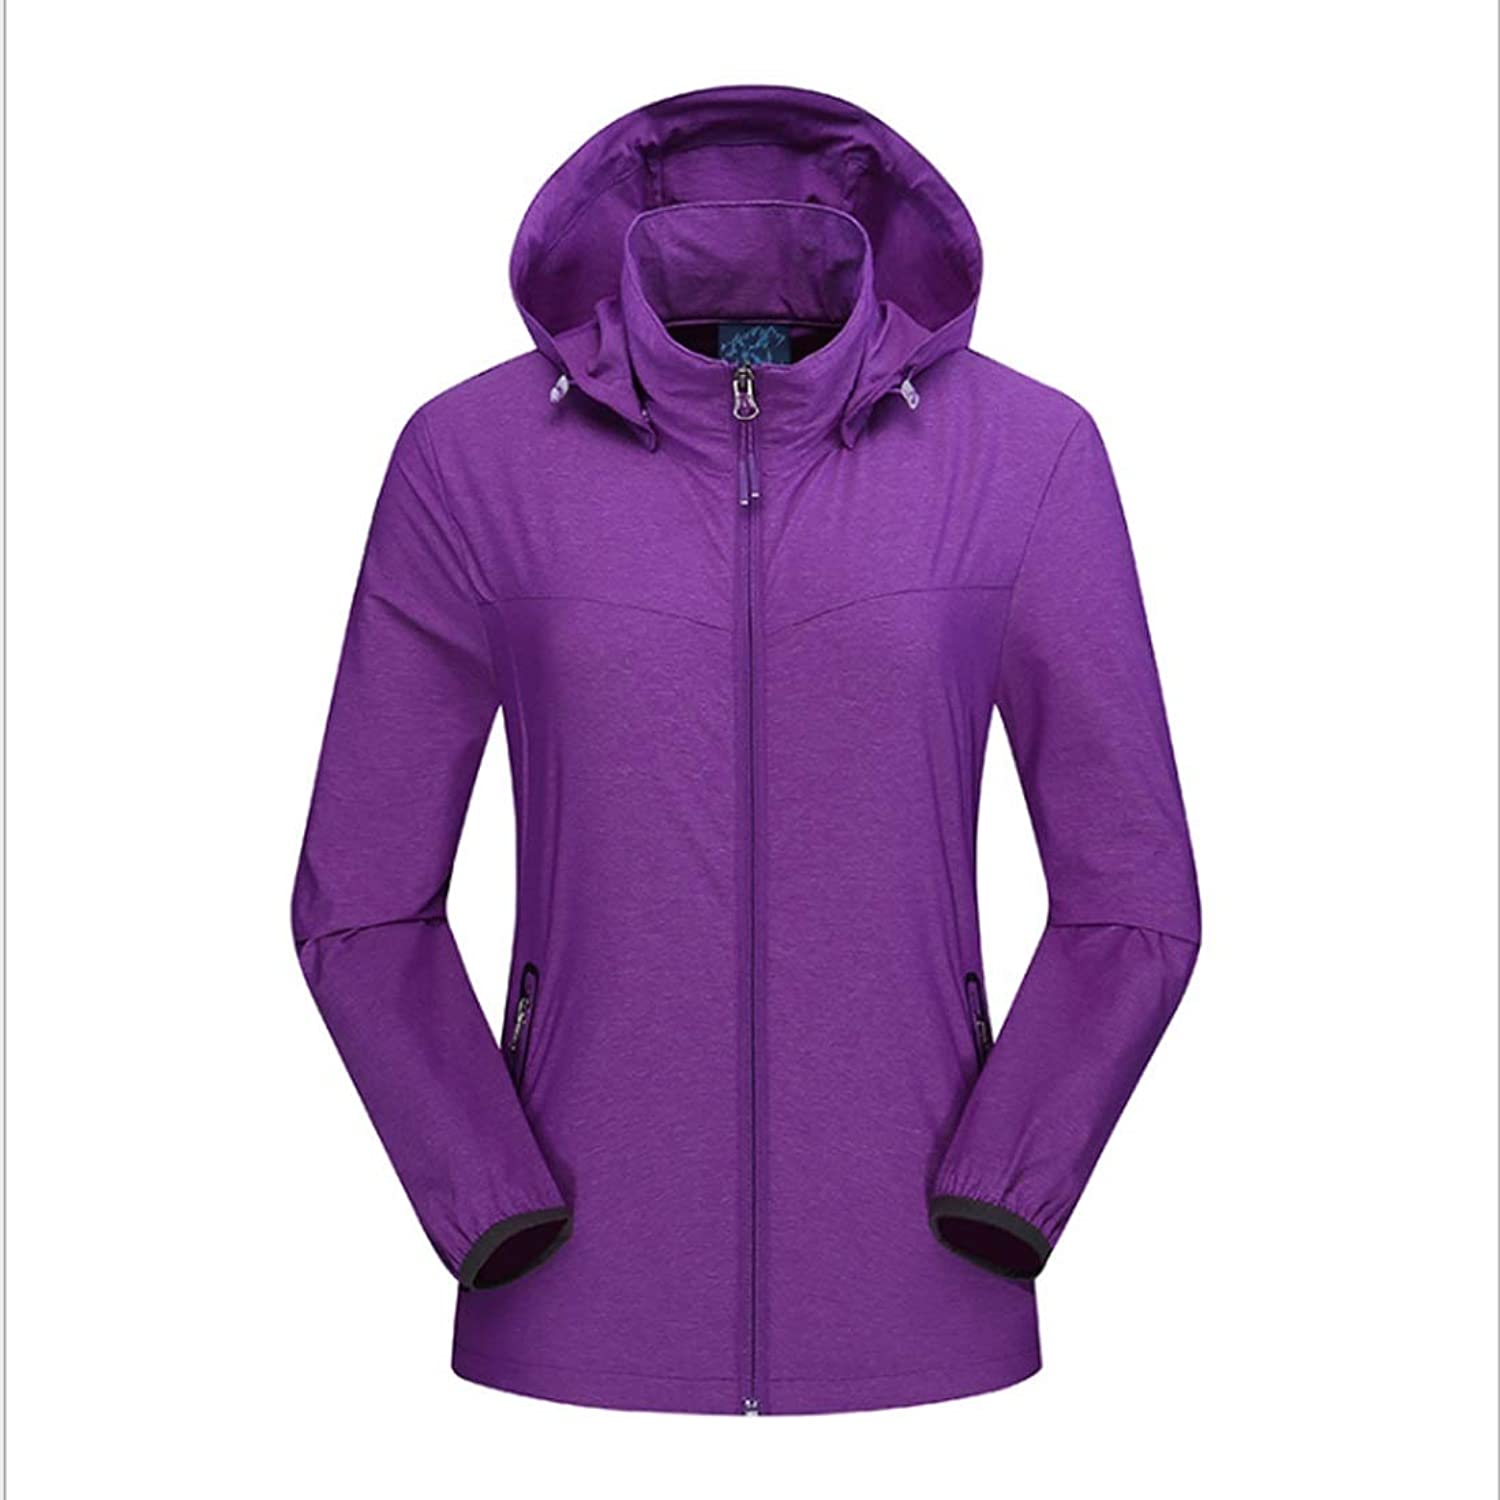 CEFULTY Spring Thin Section Ms. Solid color Stretch Windbreaker Coat Plain Waterproof Breathable (color   01, Size   M)